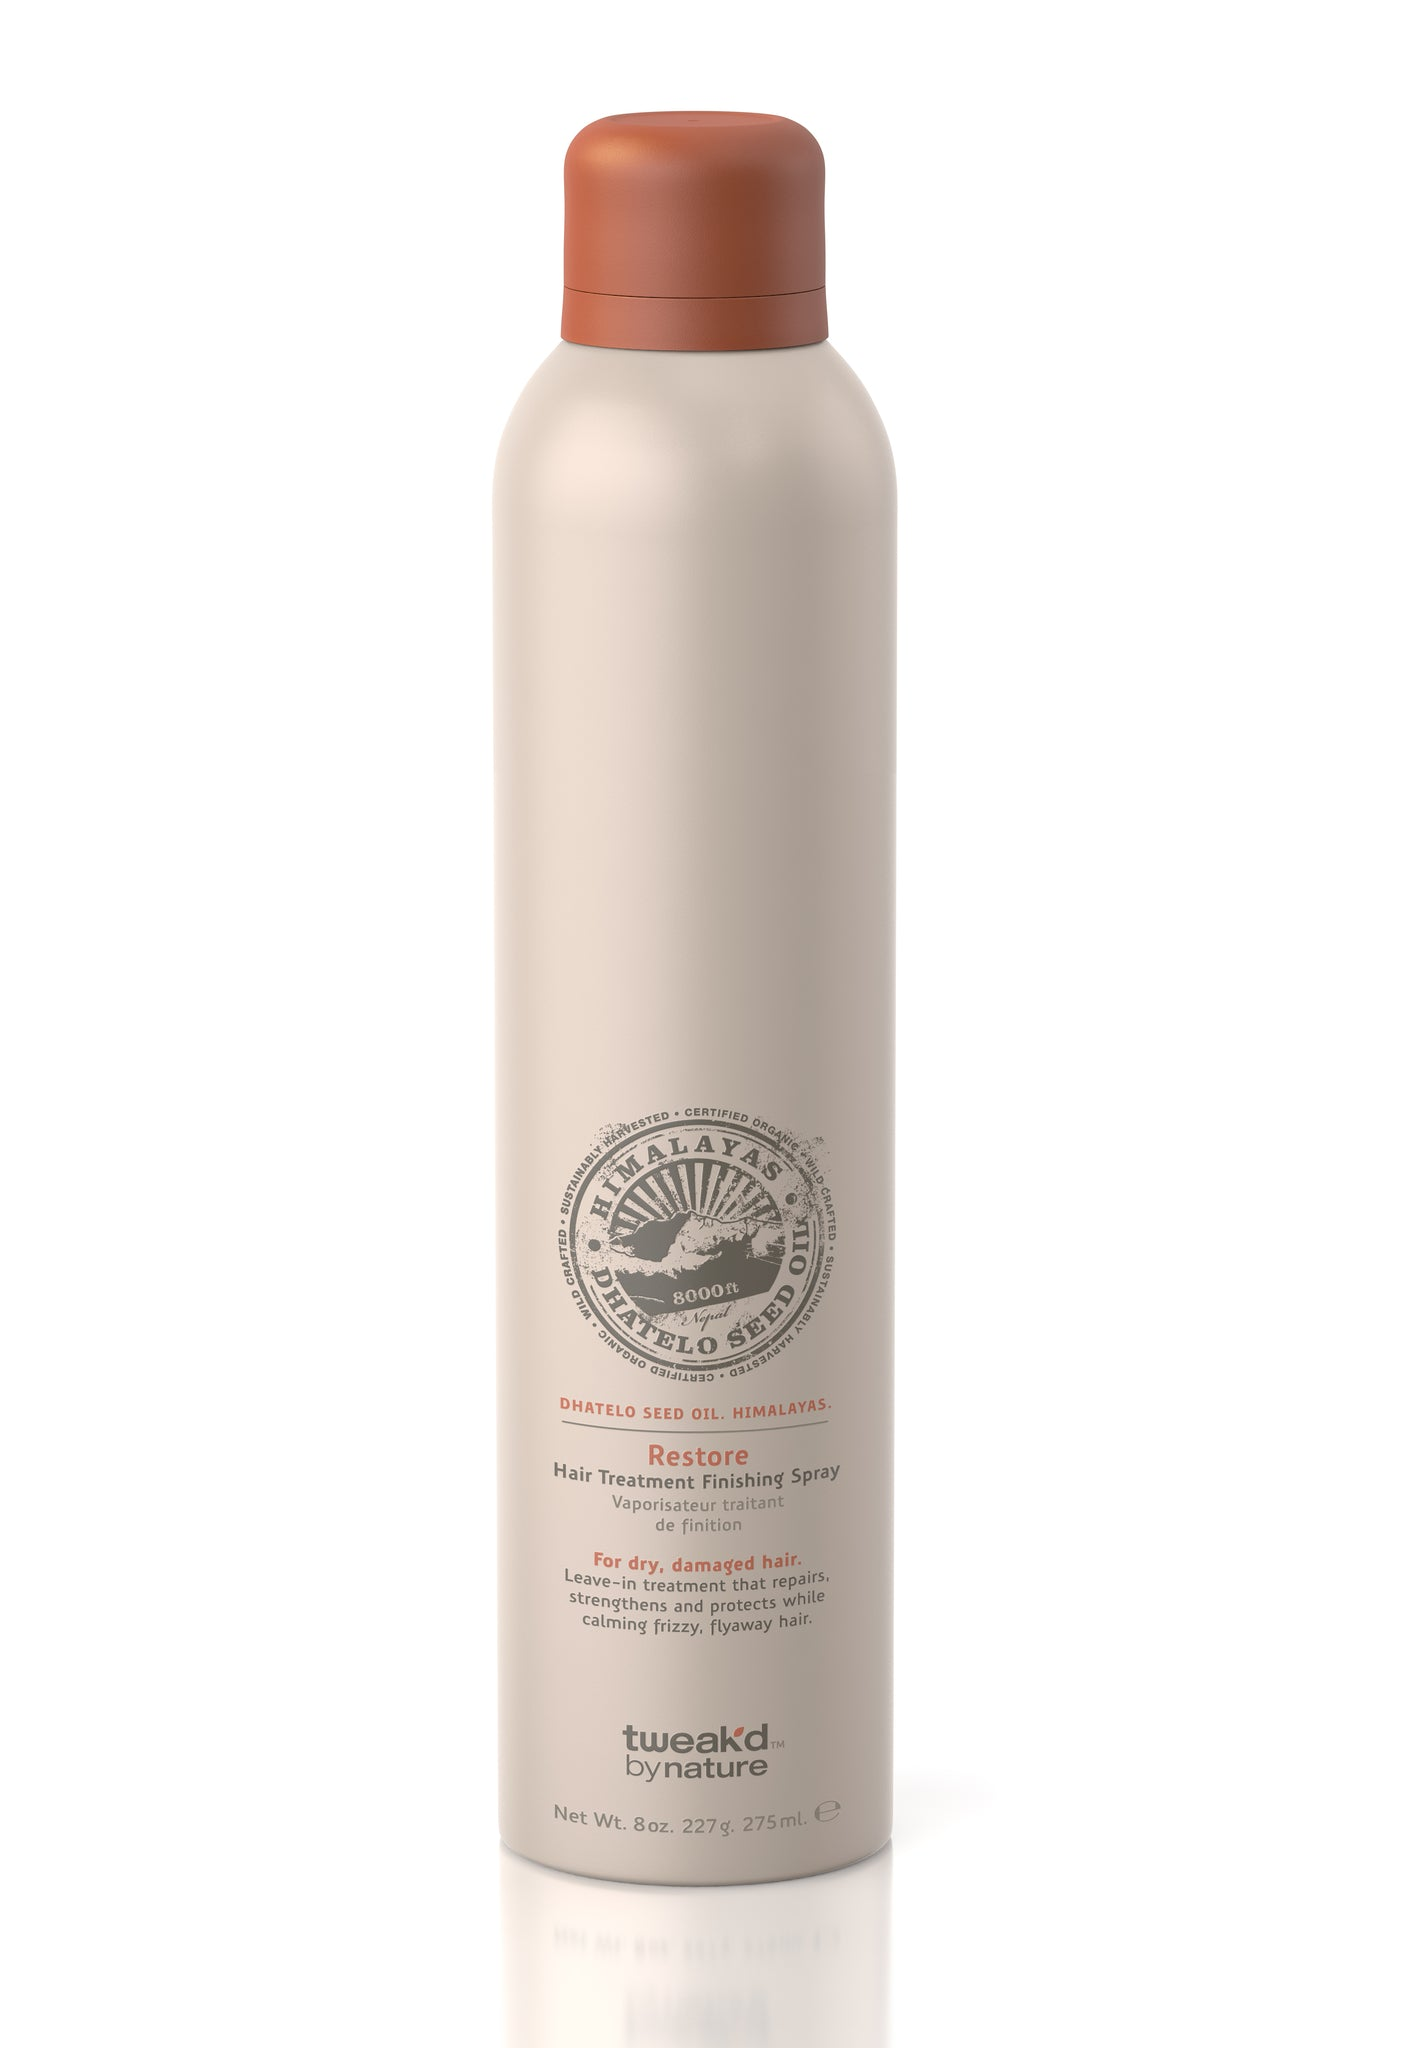 Tweak'd by Nature Restore Hair Treatment Finishing Spray